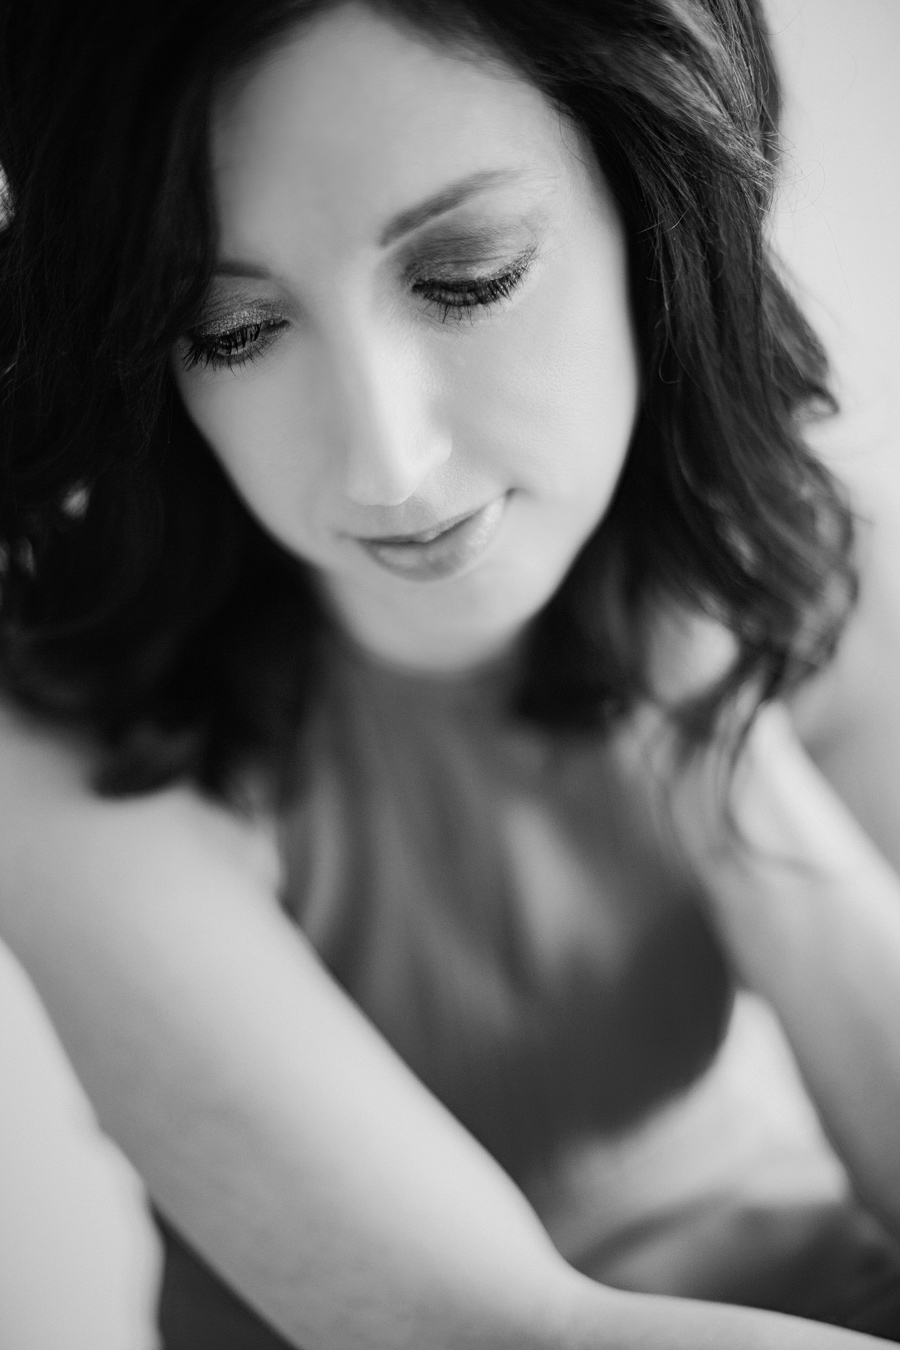 calgary boudoir photographers, best boudoir photos calgary, svetlana yanova, calgary beauty photos, glamour photos calgary